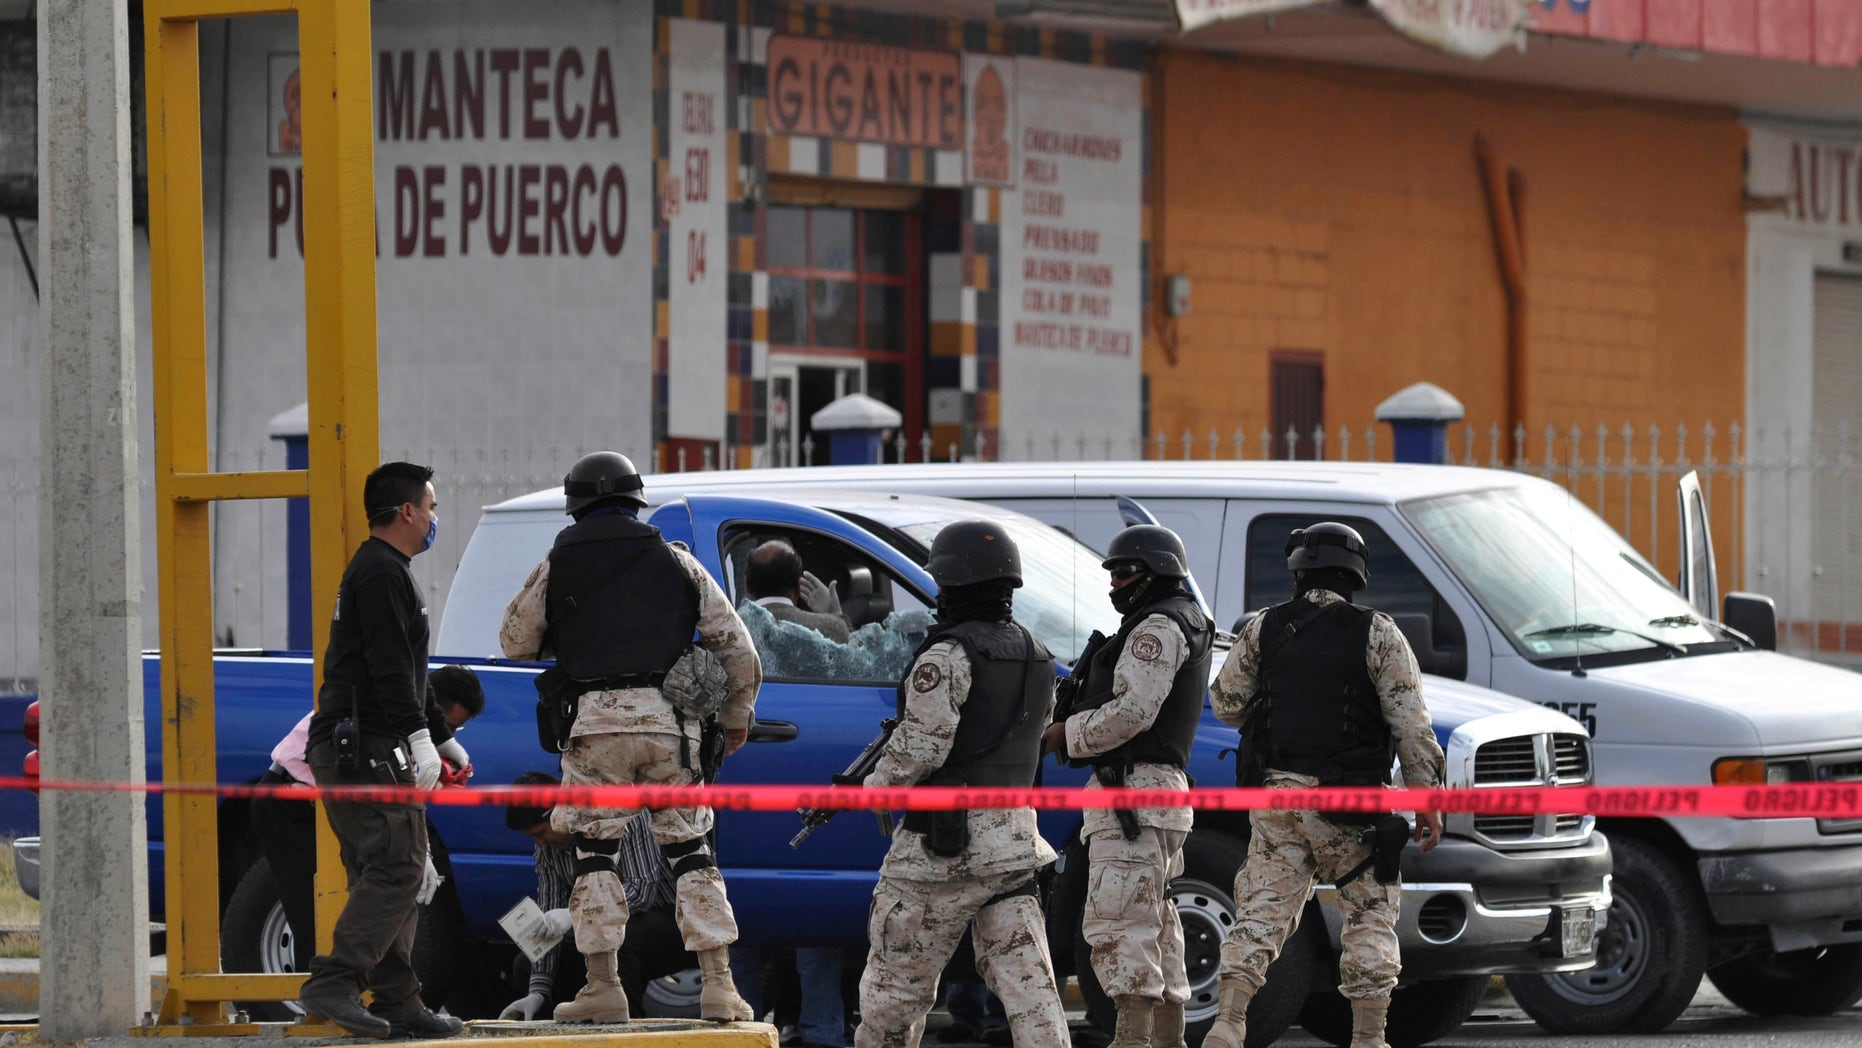 Soldiers patrol as forensics stand next to a truck where two investigative police officers were shot by unidentified assailants in Ciudad Juarez, Mexico, Monday Dec. 6, 2010. One investigative police officer died in the shooting, according to police.